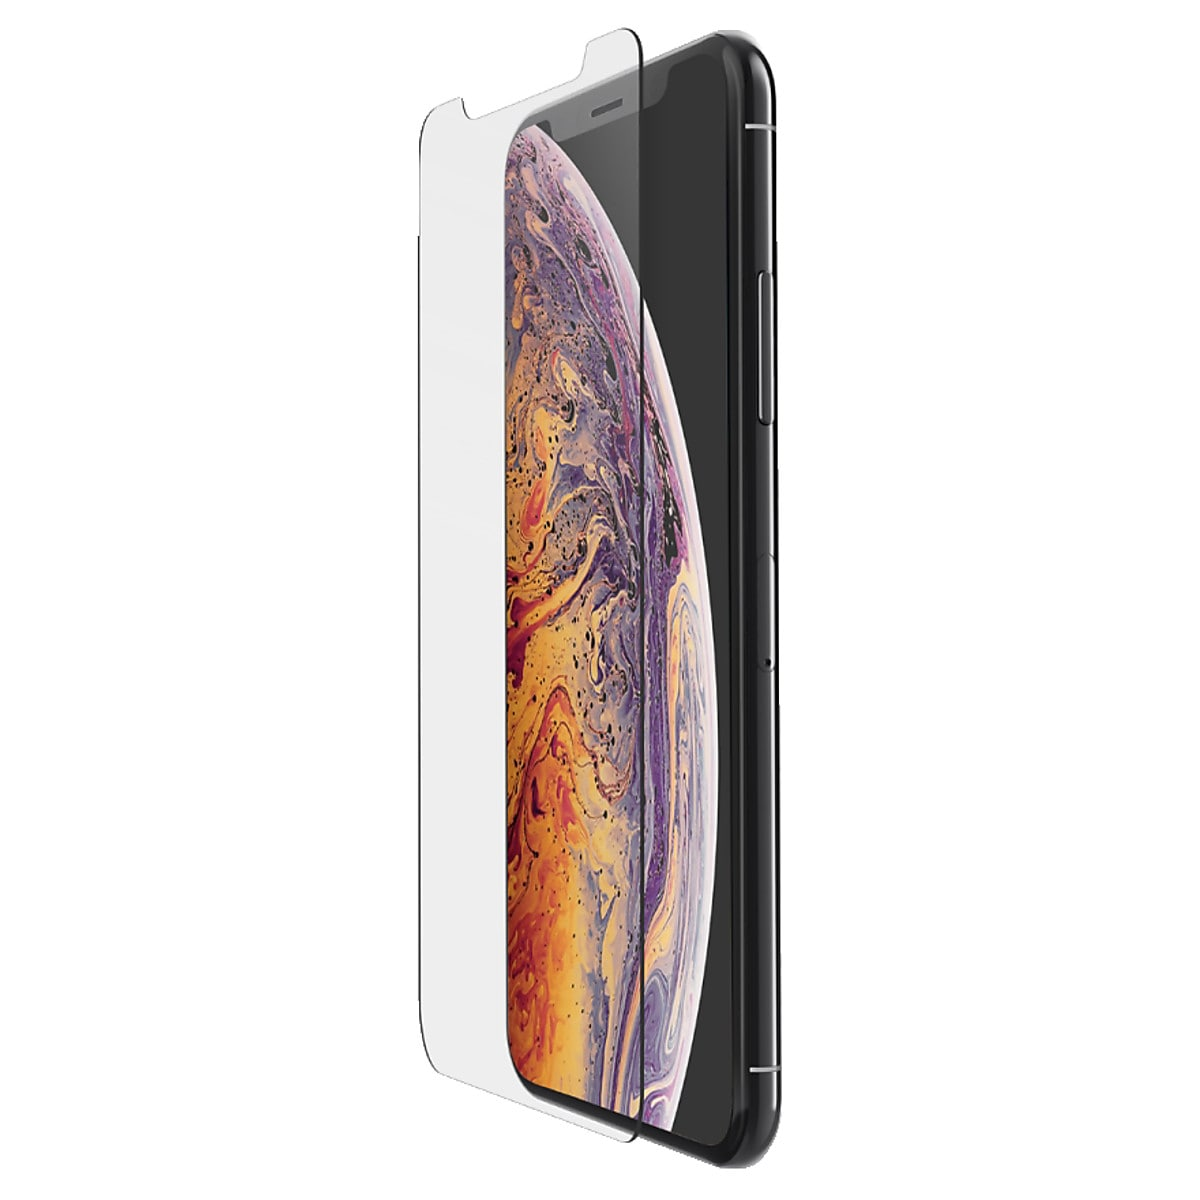 Belkin ScreenForce InivisiGlass Ultra Screen Protector for iPhone XS Max